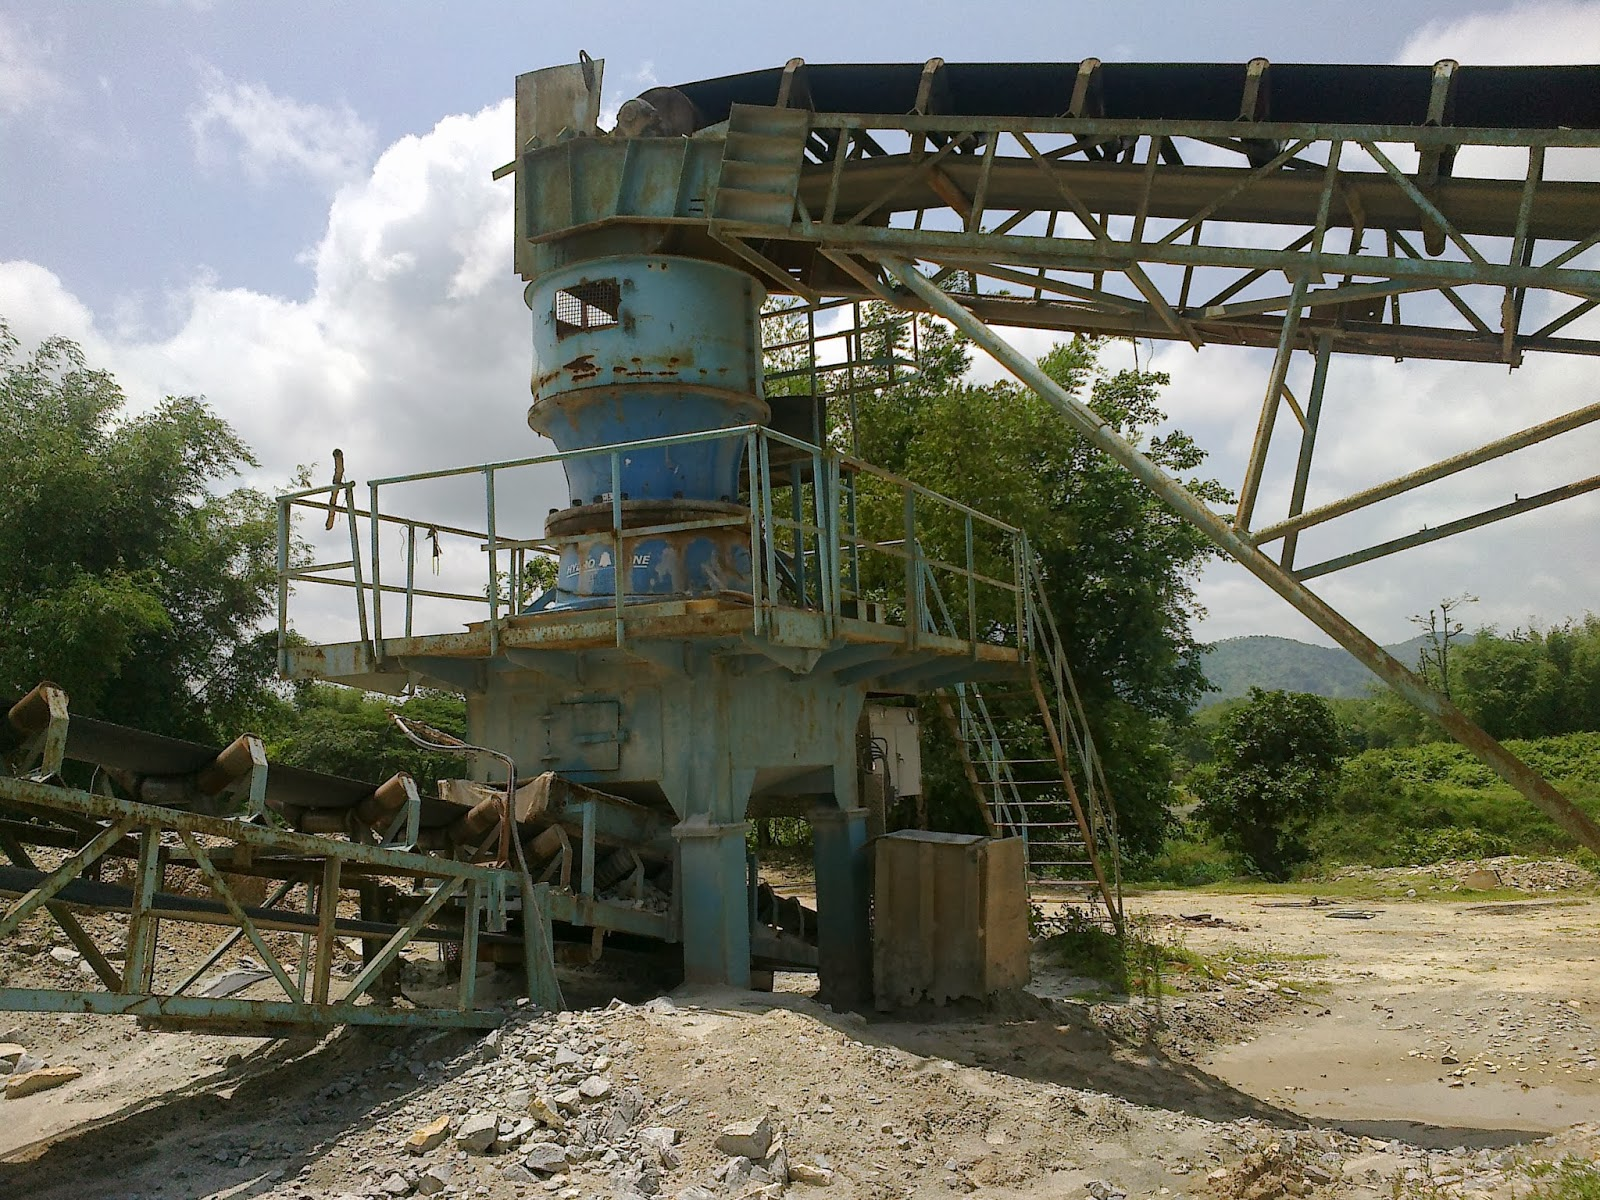 Small Crusher for sale, concrete crusher, aggregate crusher, crushing machine, crusher equipment,